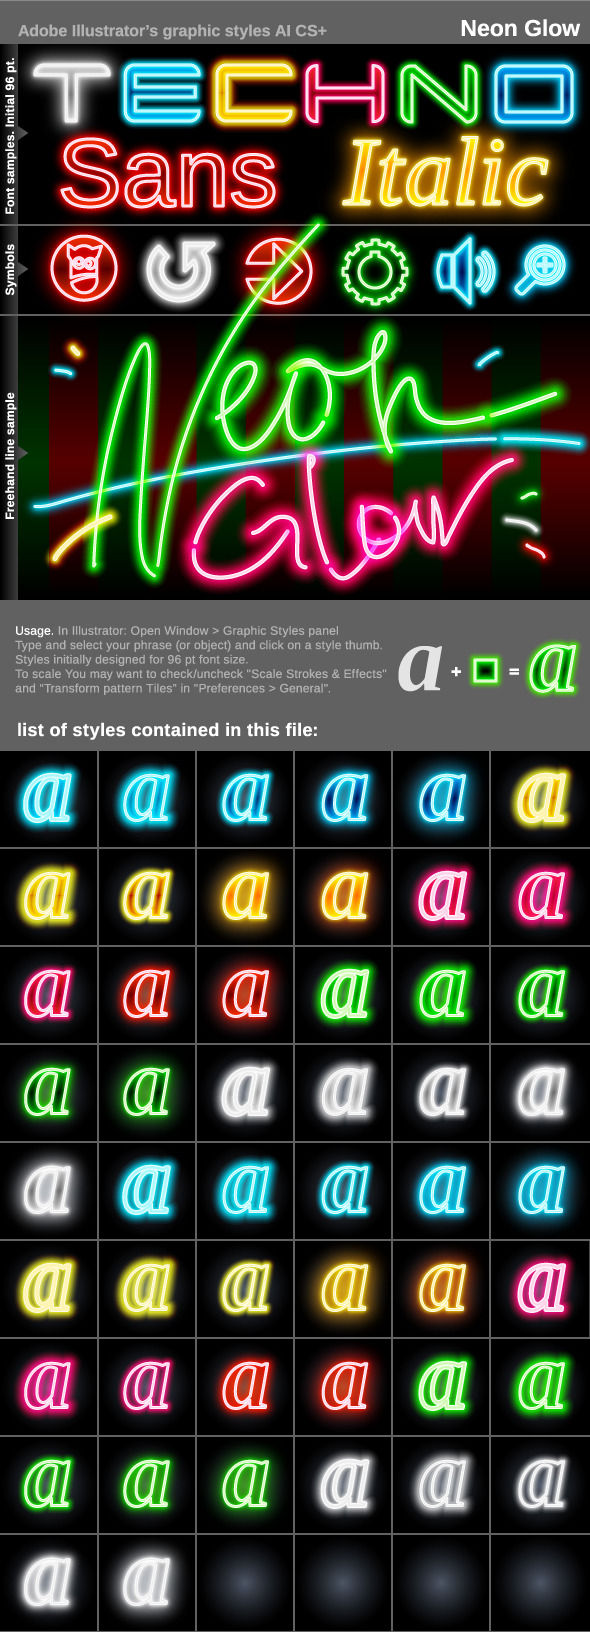 Illustrator Graphic Styles. Neon Glow - Styles Illustrator